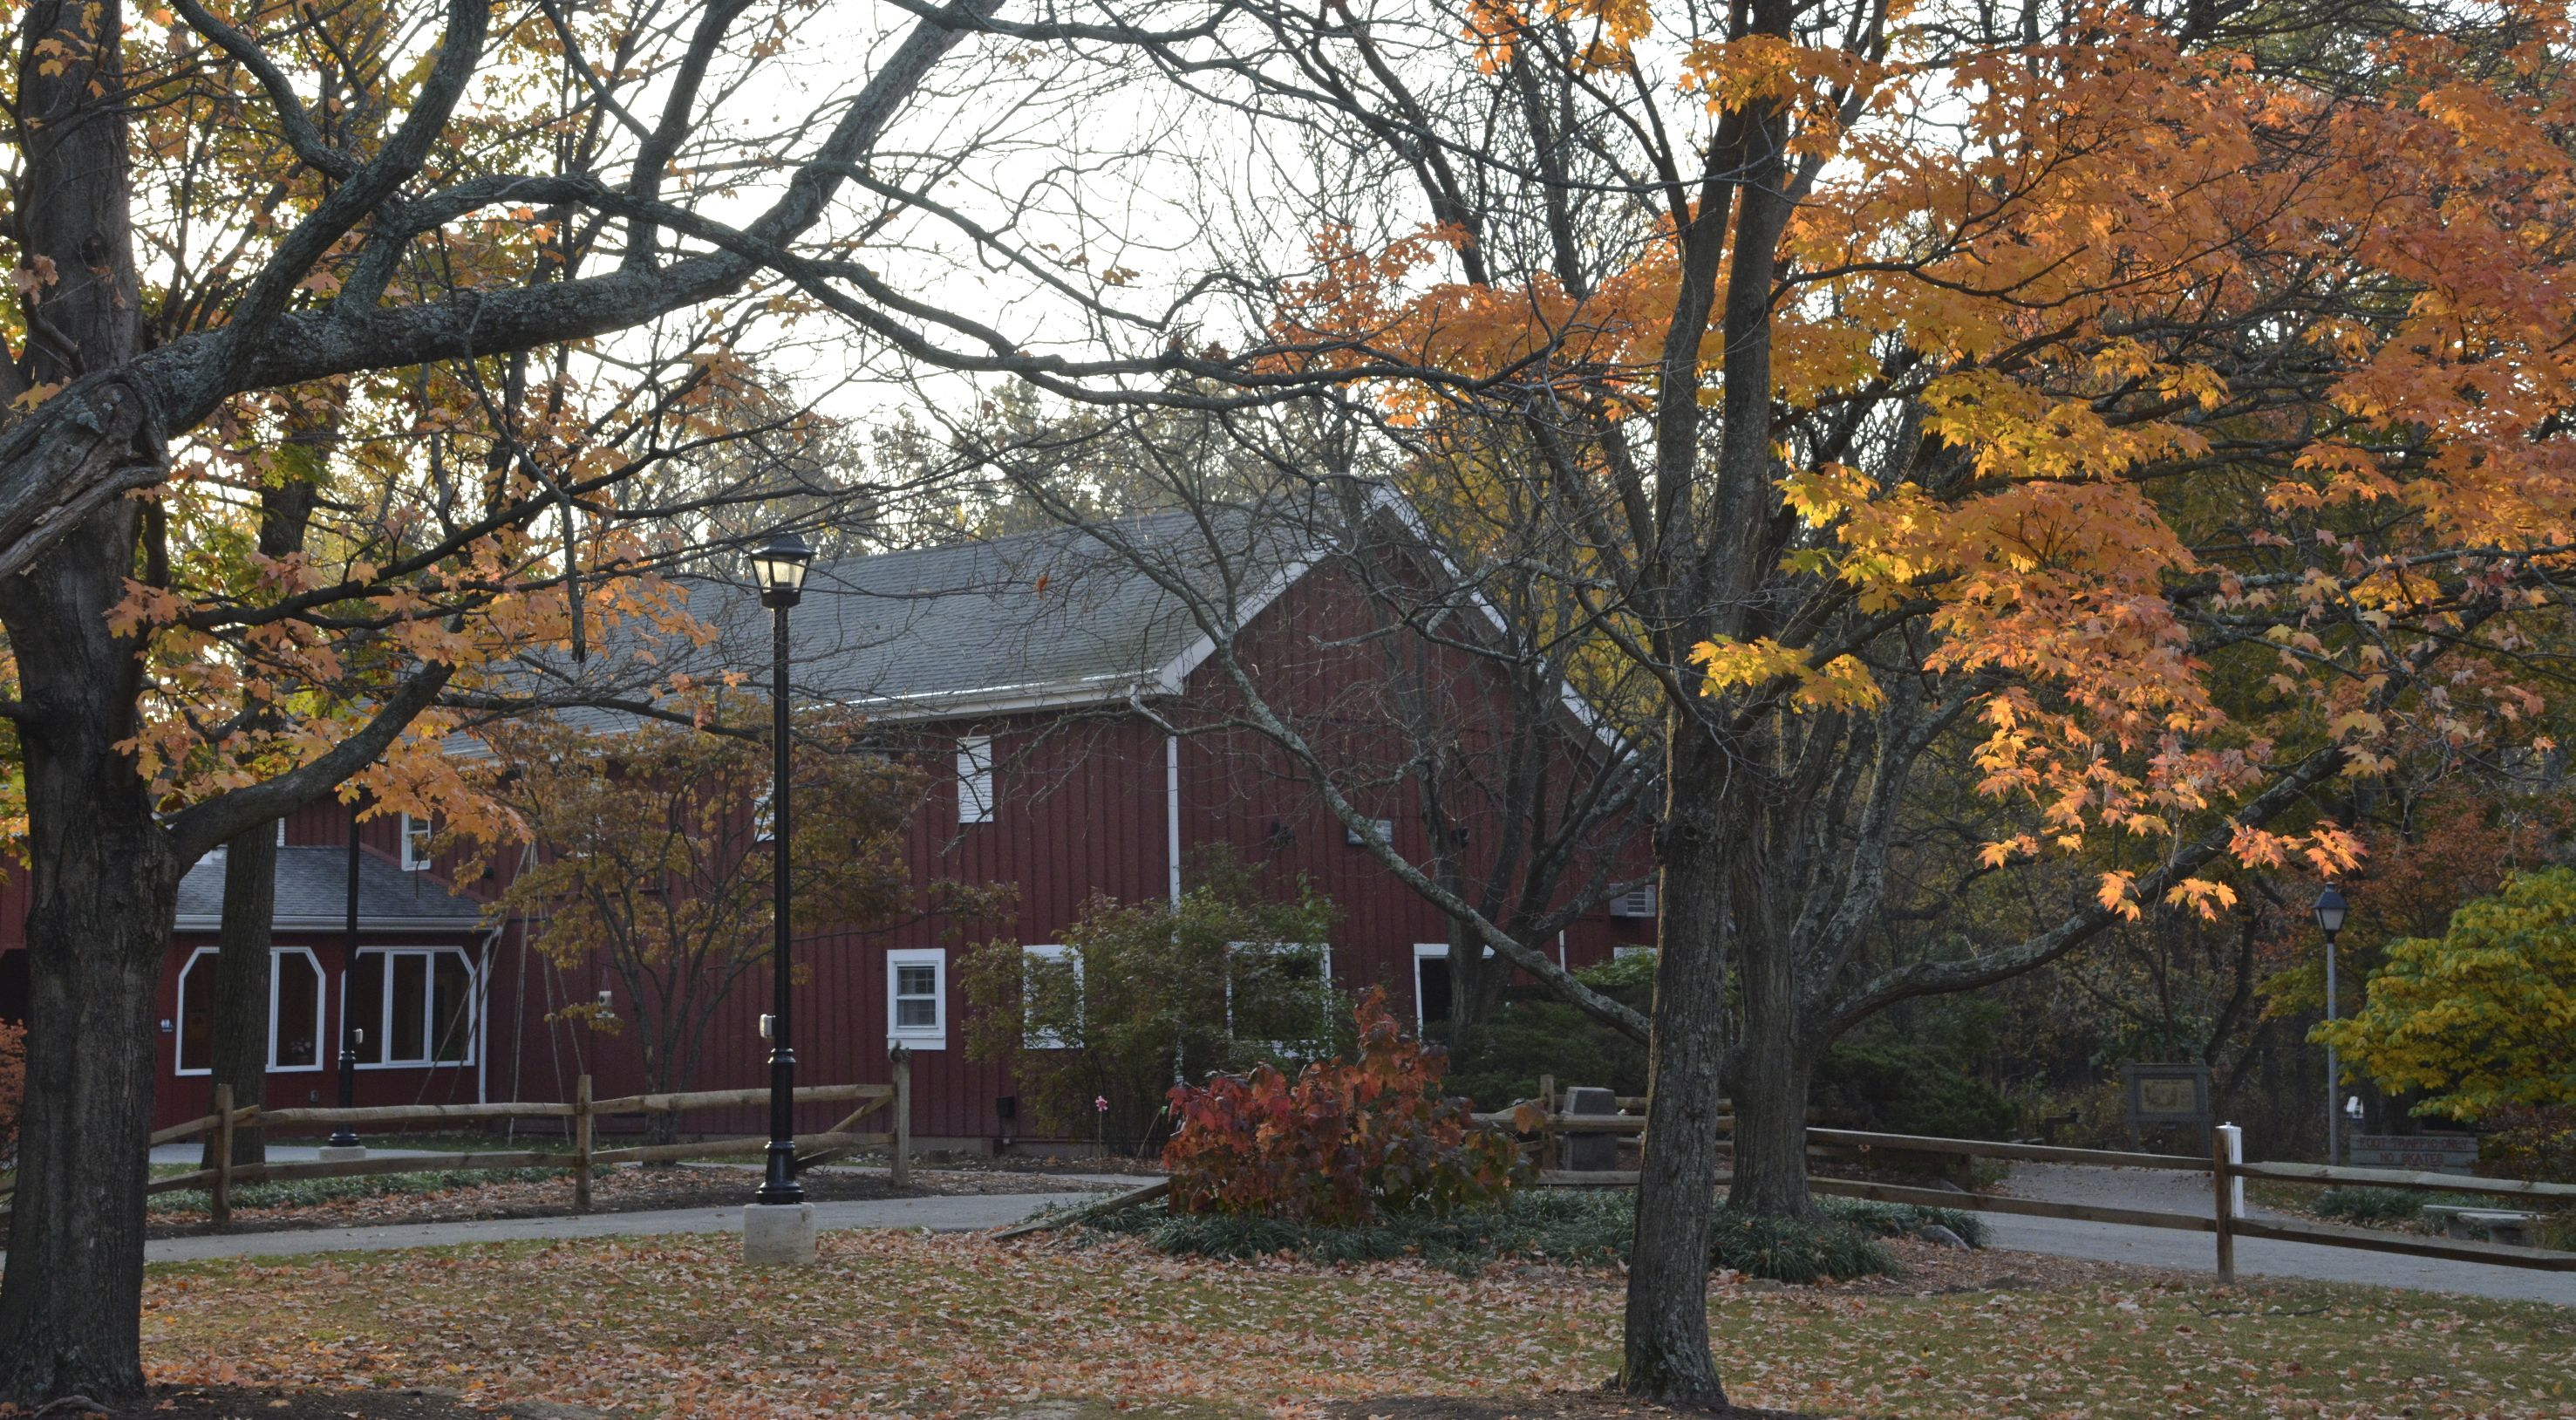 A sunny fall day shows off the red Ellenwood Nature Barn at Farbach-Werner Nature Preserve. Trees with orange leaves surround the barn. Leaves also are smattered across the ground.